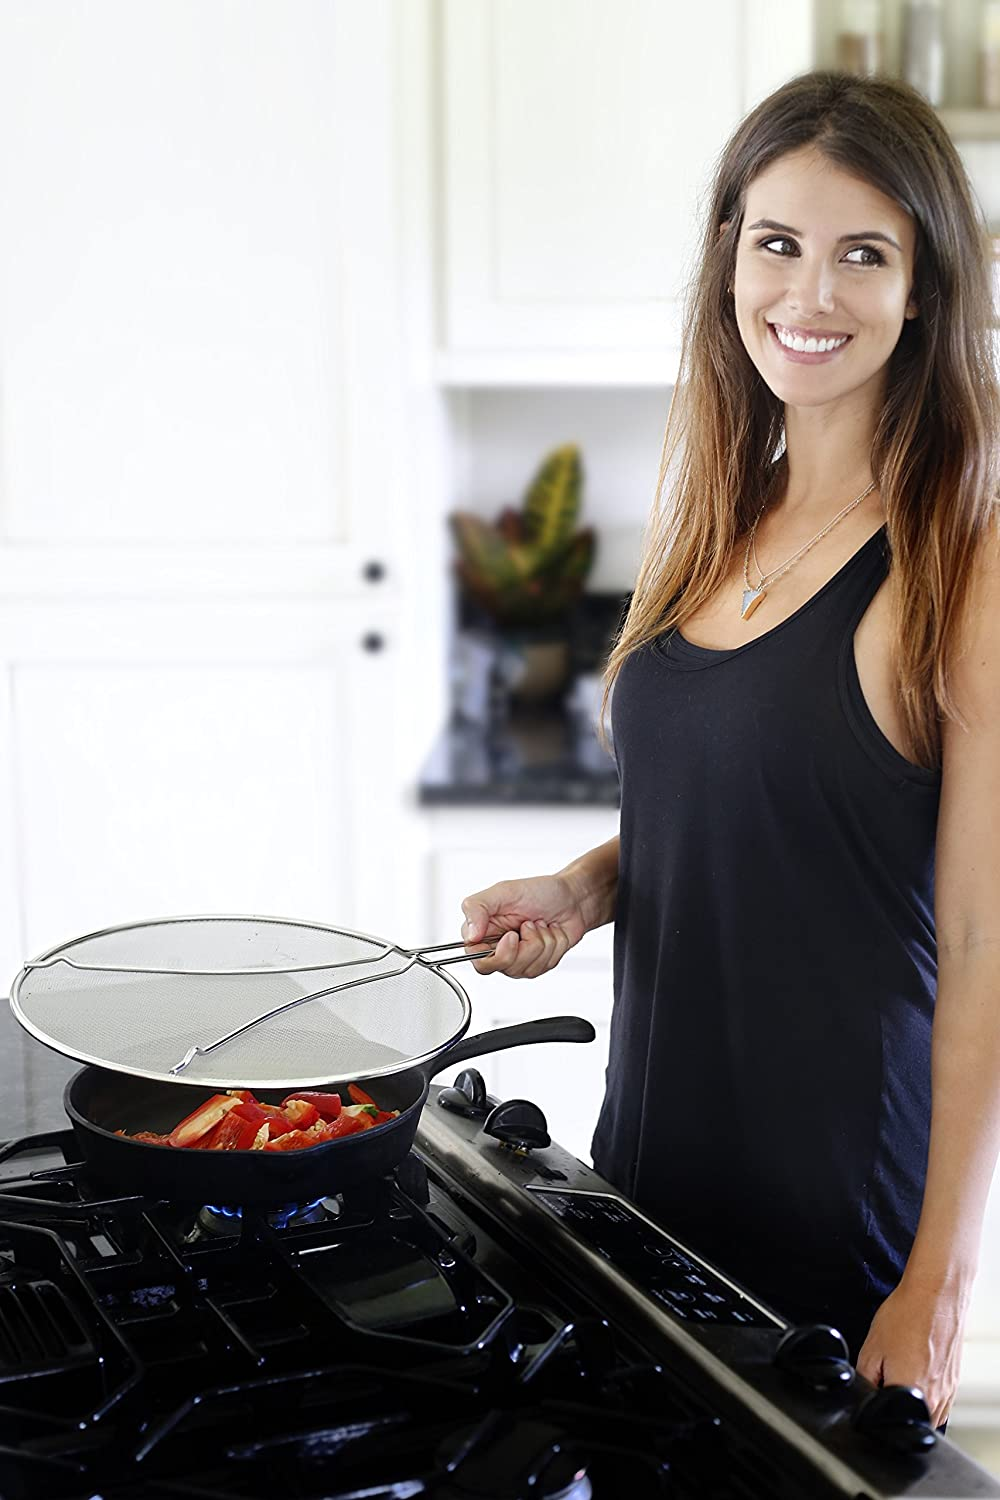 Splatter Guard for Cooking Protects Skin from Burns Stops 99/% of Hot Oil Splash LiveFresh Premium Grease Splatter Screen for Frying Pan 13 Iron Skillet Lid Keeps Kitchen Clean LF2015SS